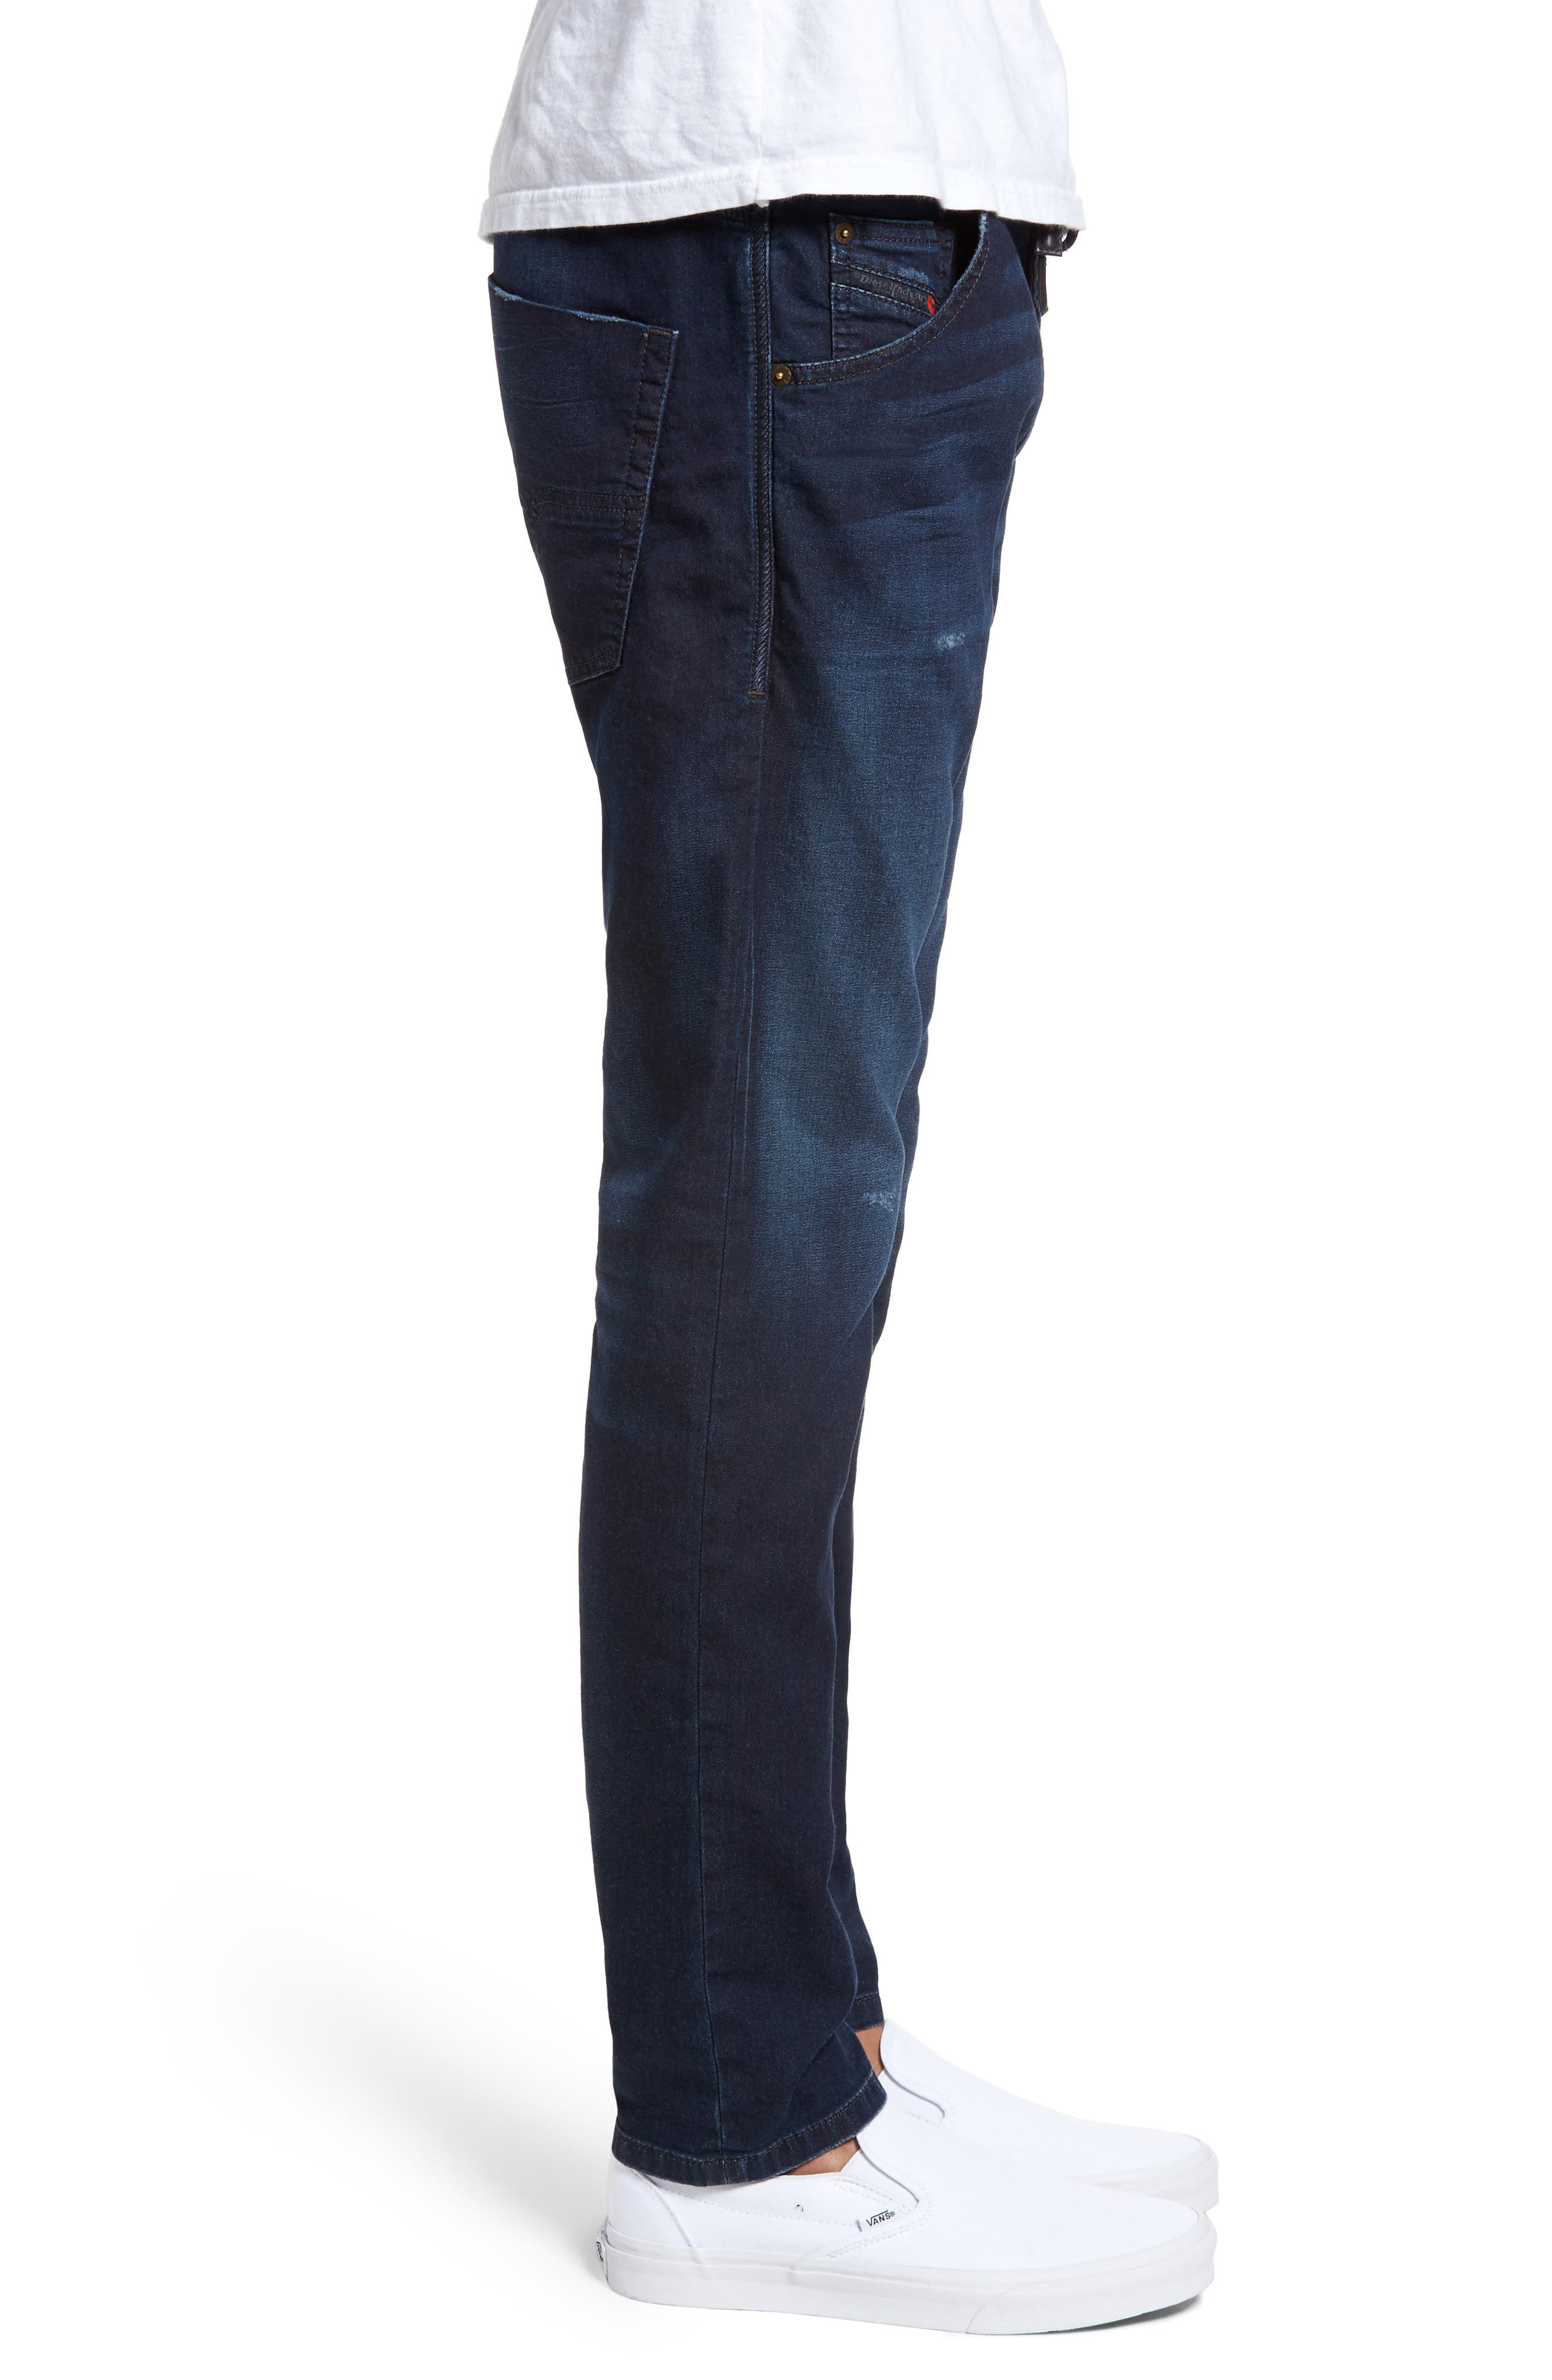 Krooley Slouchy Skinny Jeans,                             Alternate thumbnail 3, color,                             900